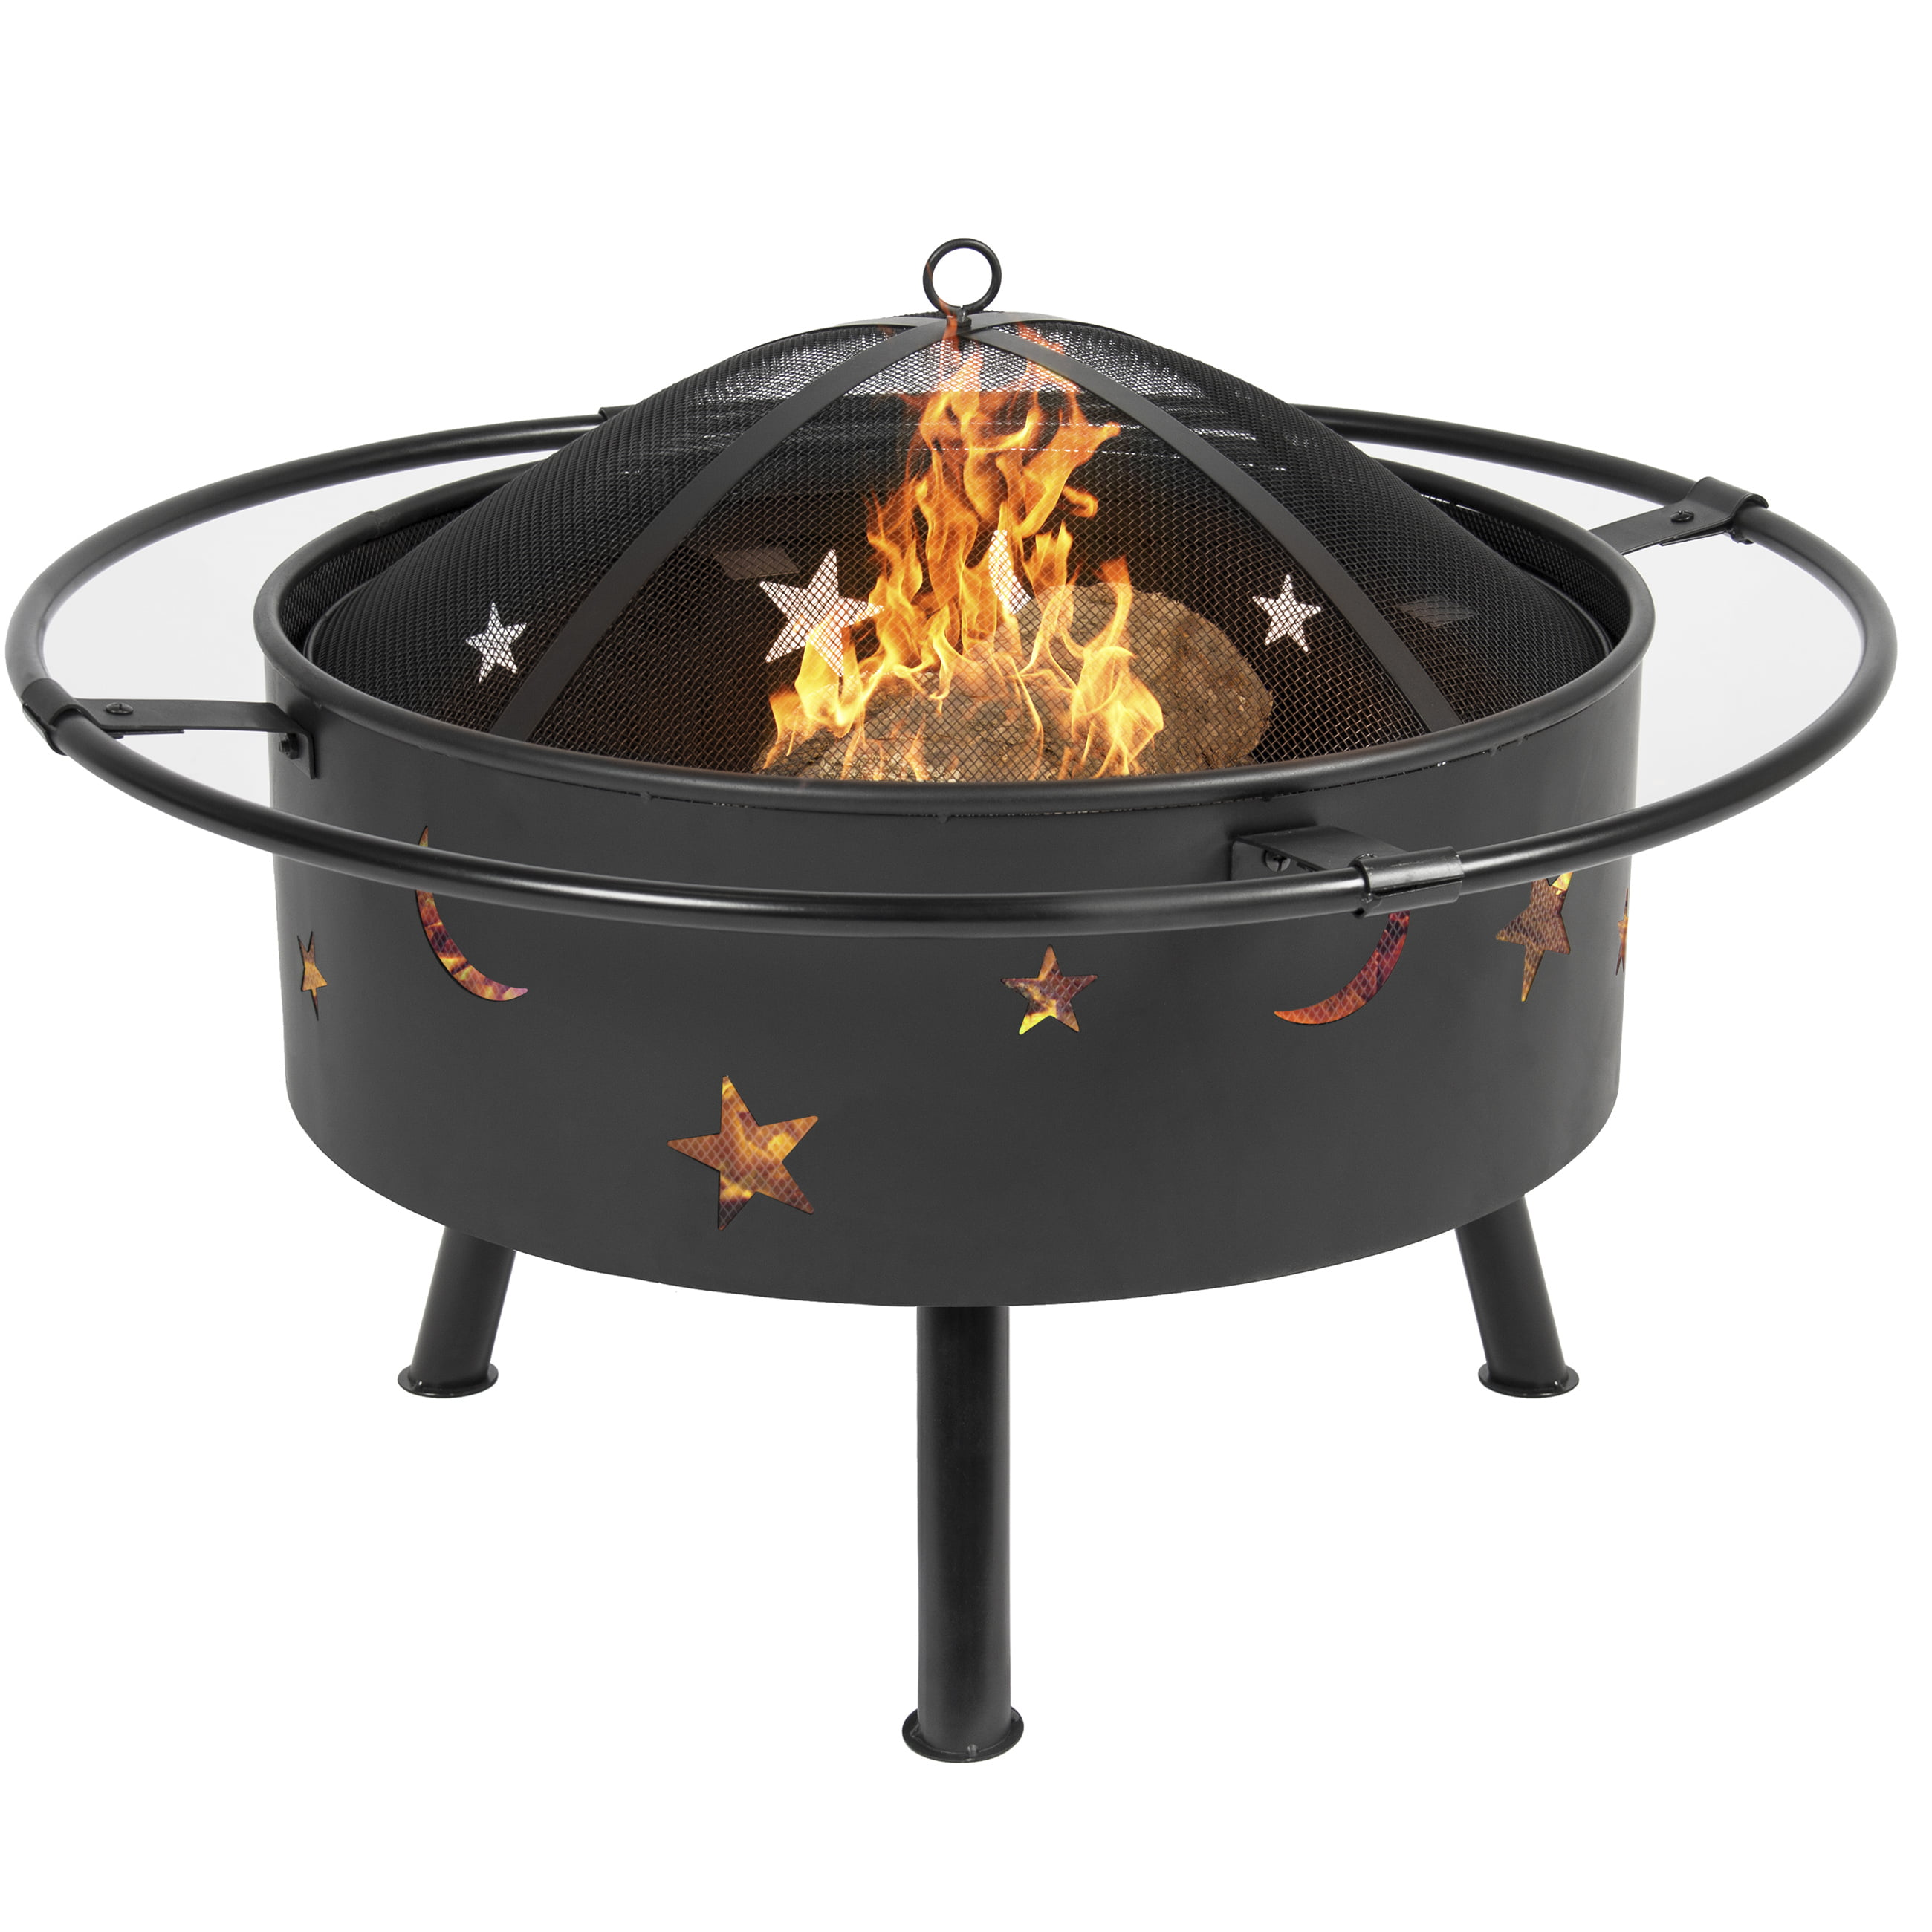 "Best Choice Products 30"" Fire Pit Bbq Grill Fire Bowl Patio Fireplace Firepit by Best Choice Products"